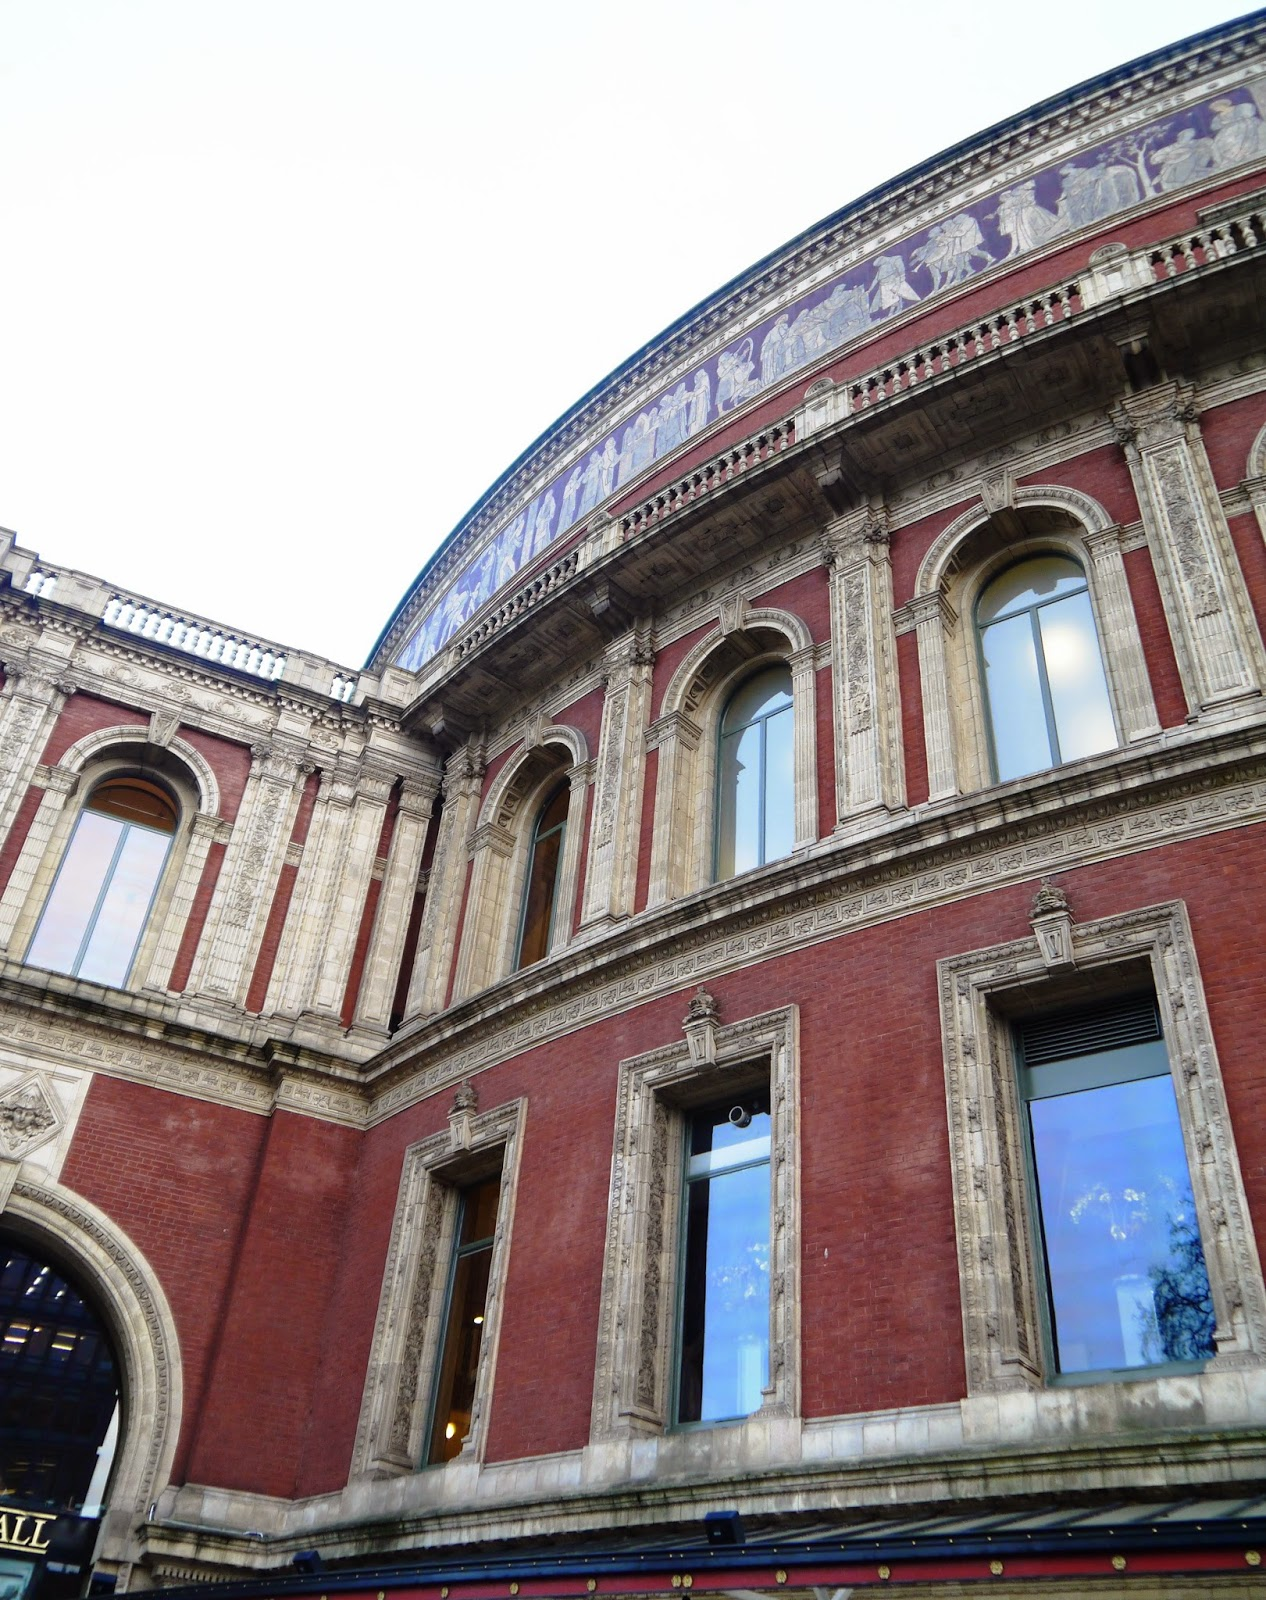 Royal Albert Hall outside